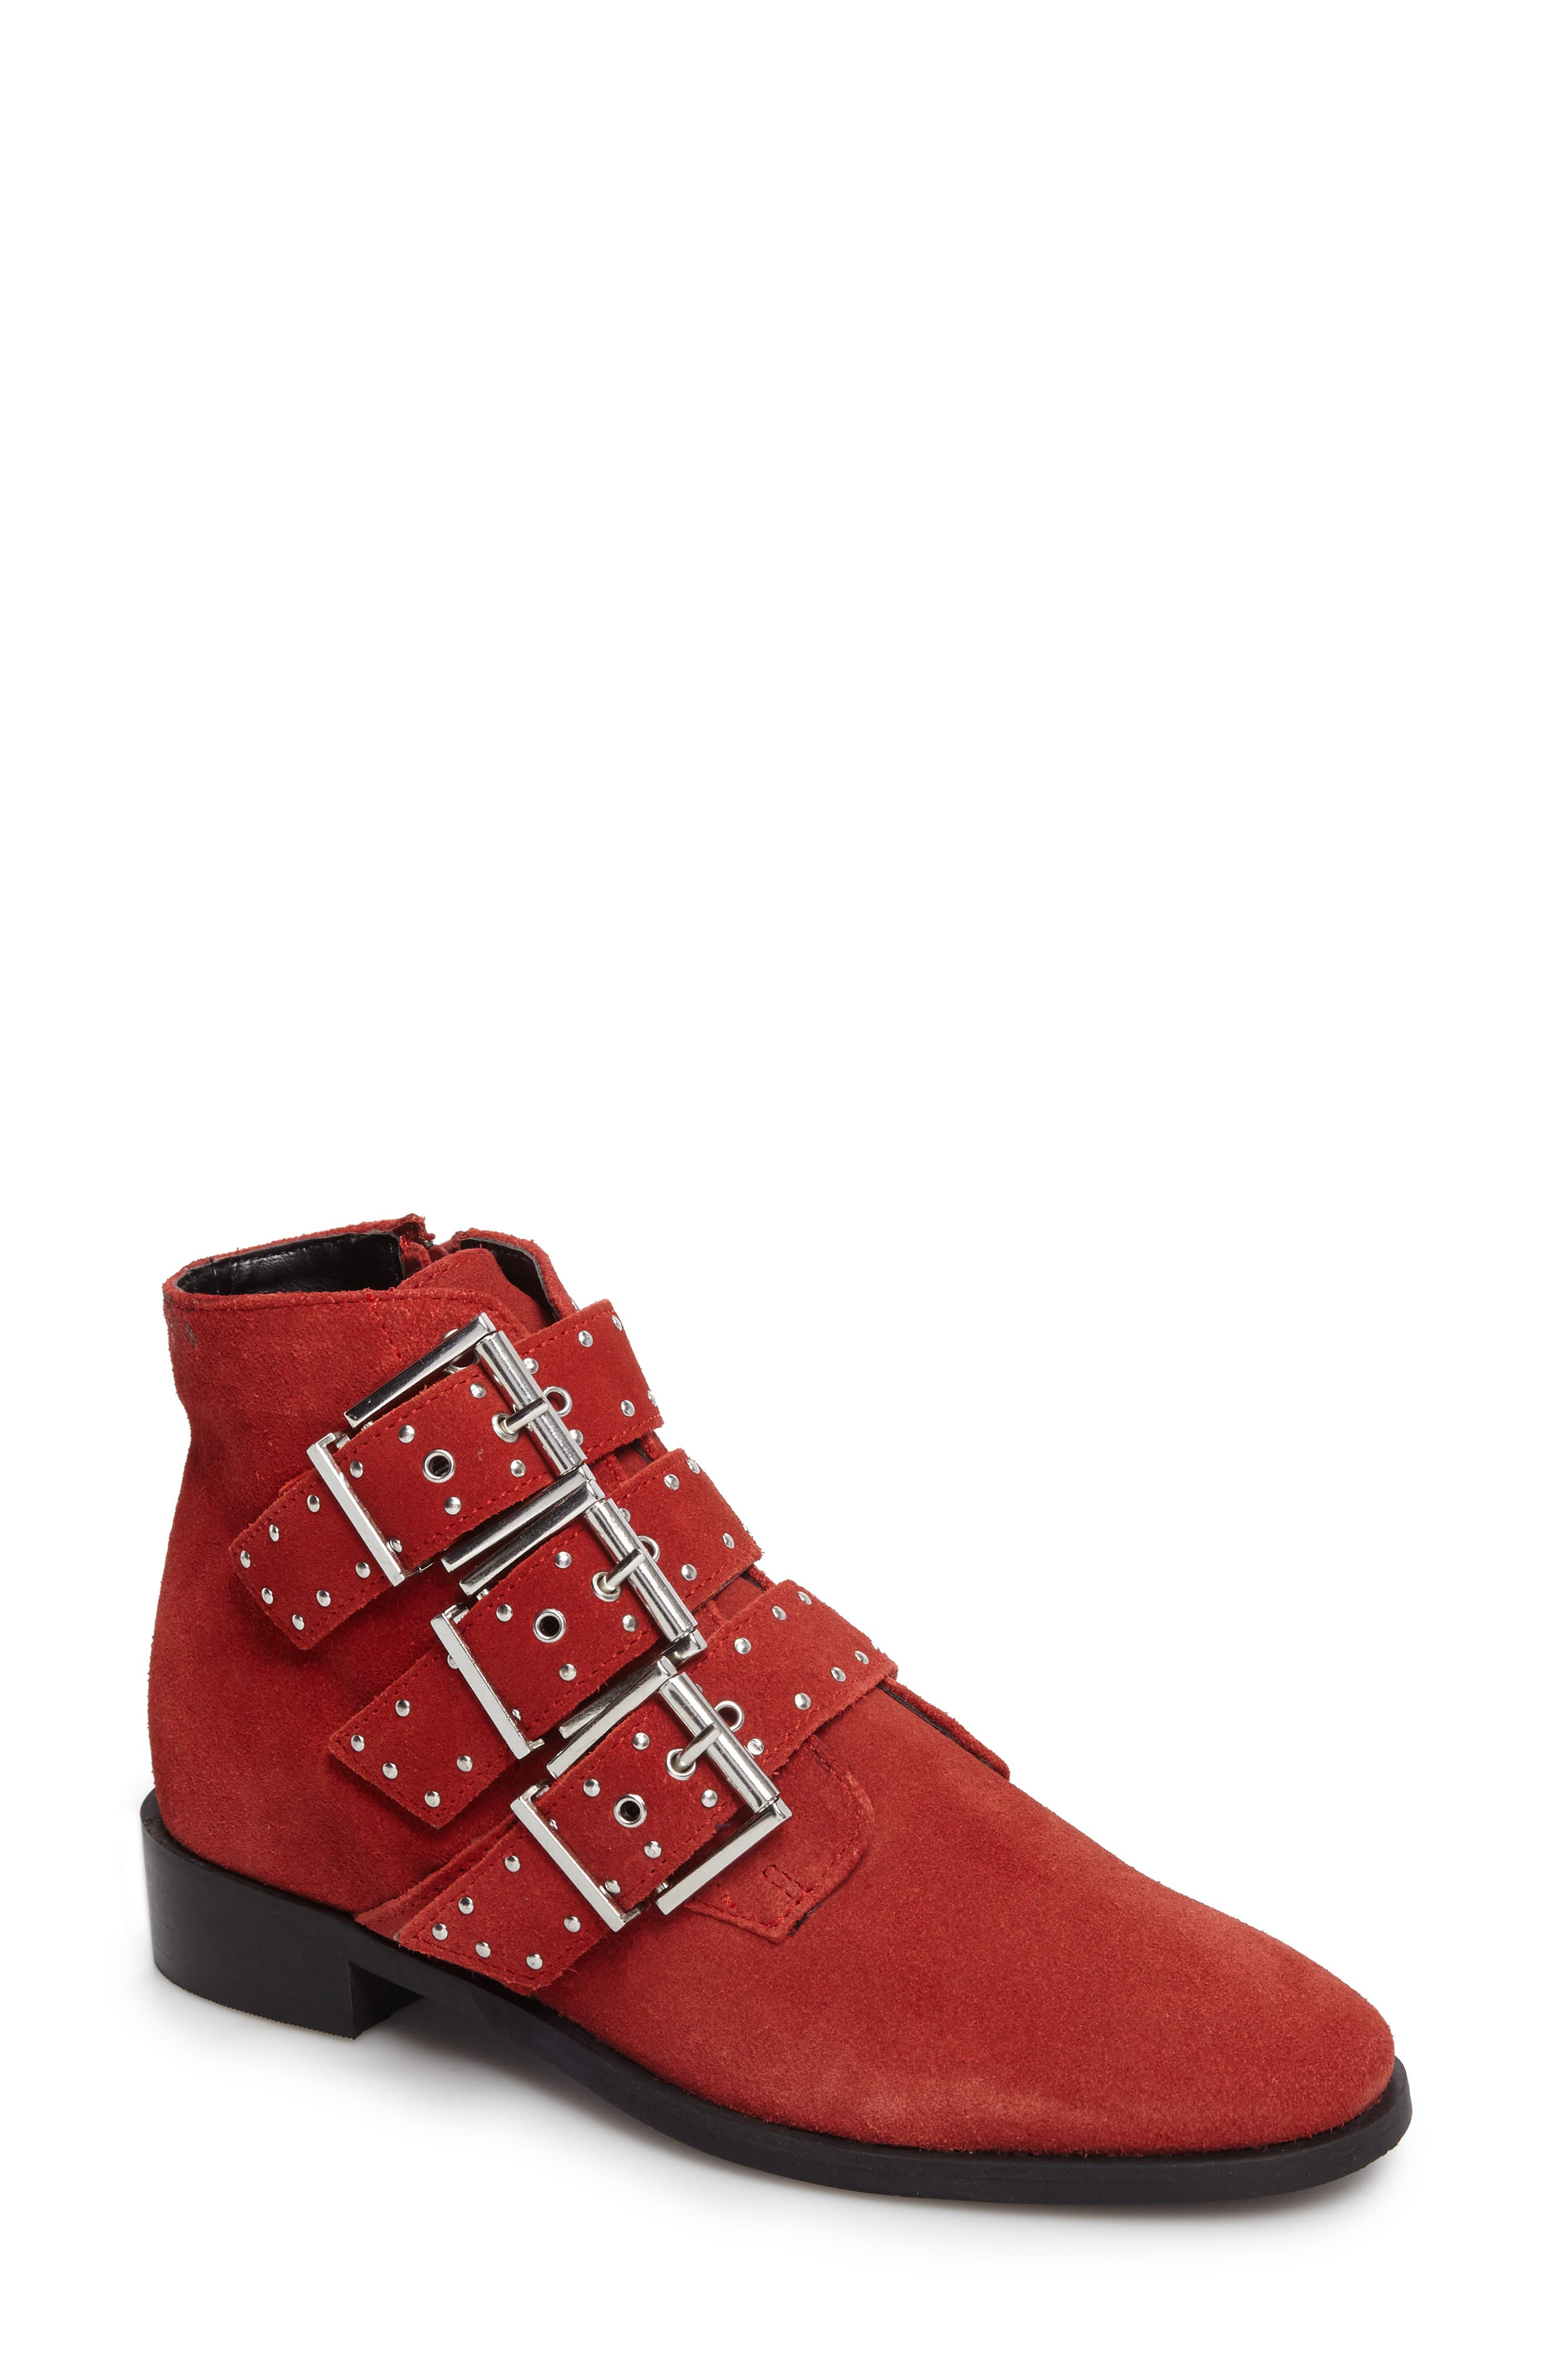 Krown Studded Bootie,                             Main thumbnail 1, color,                             Red